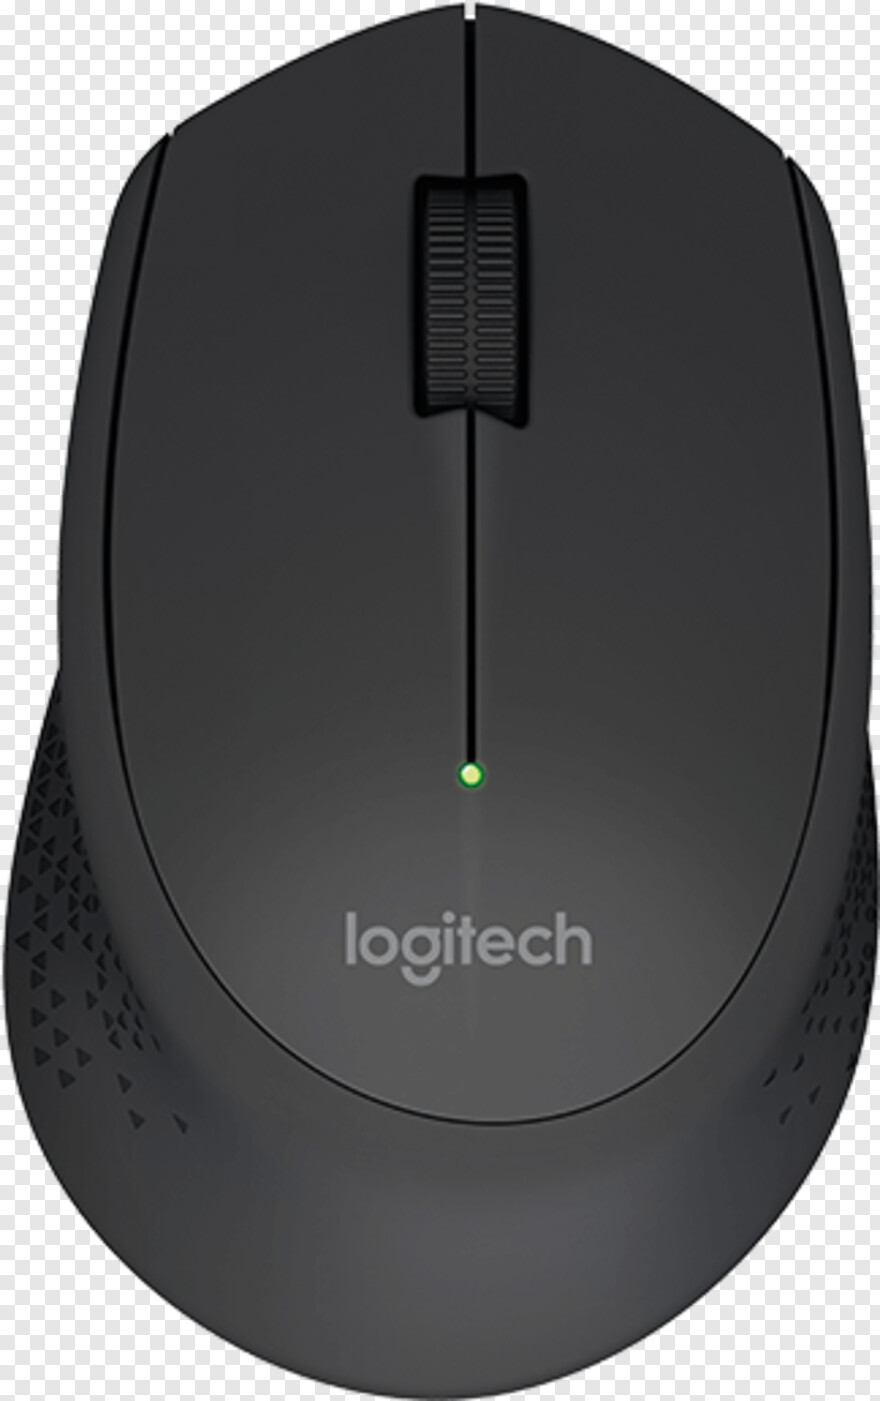 Logitech - Wireless Mouse Price In Bd, Transparent Png